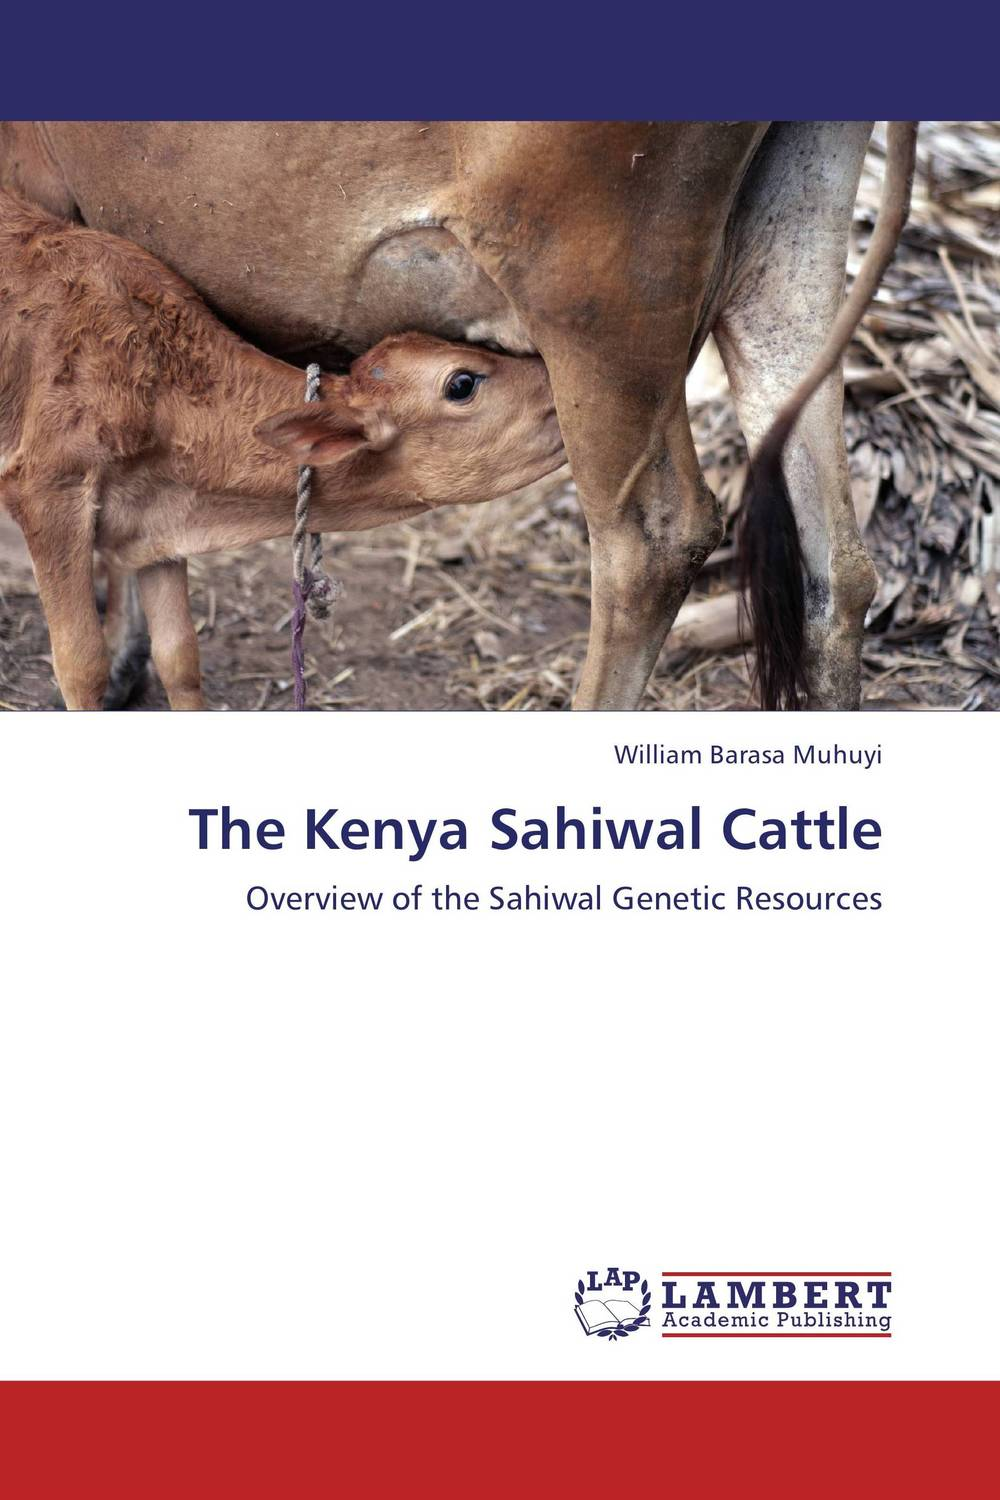 The Kenya Sahiwal Cattle therapeutic management of infertility in cattle